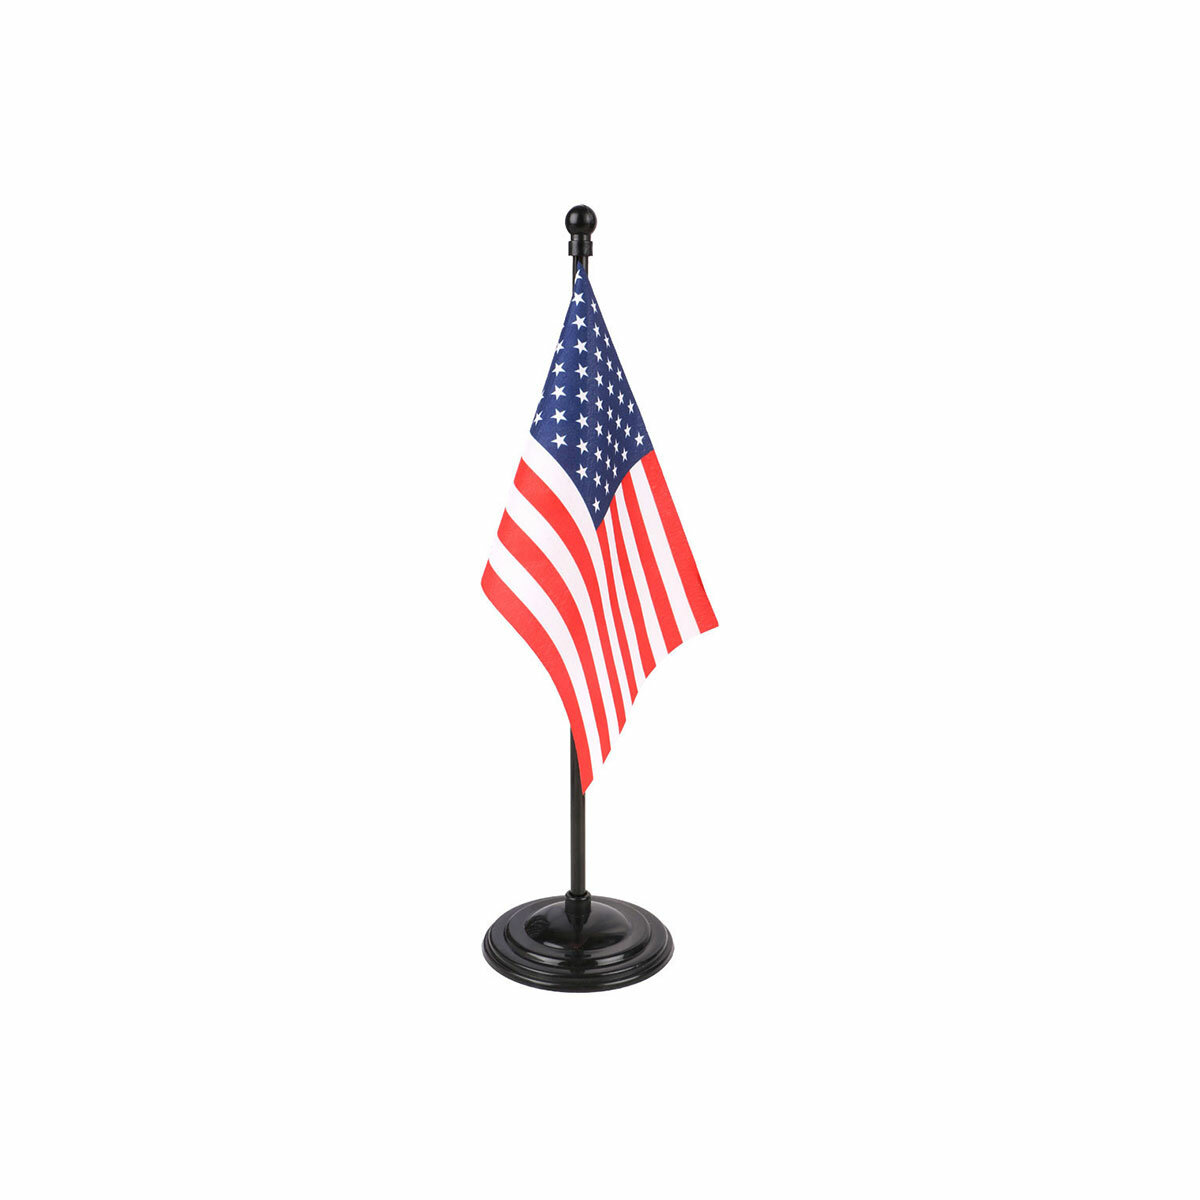 usa table or desk flag with a black plastic stand / base